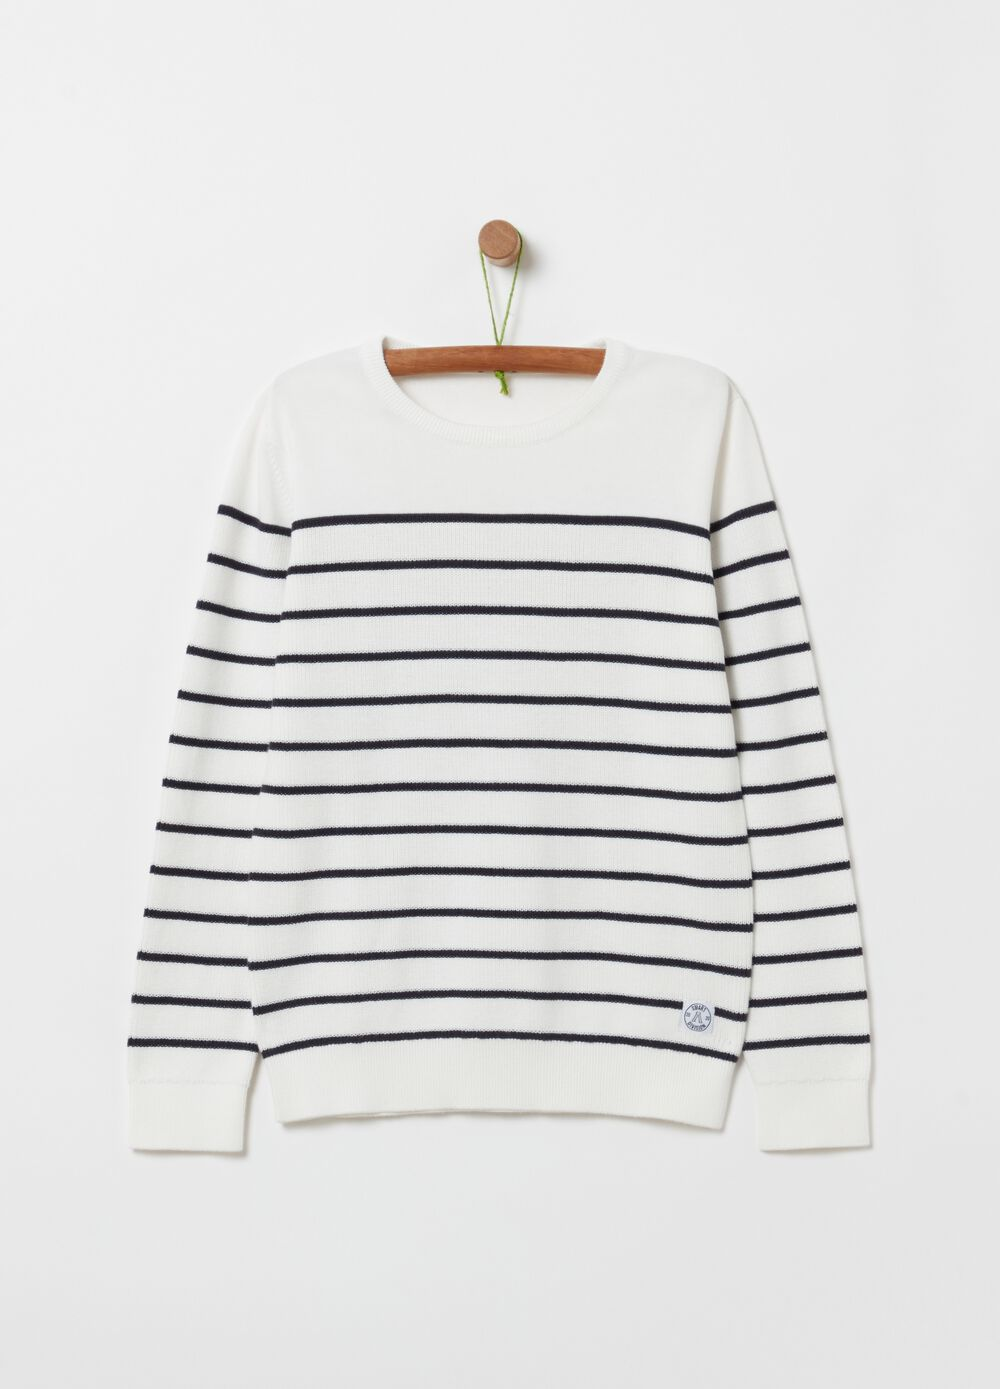 100% organic cotton top with stripes